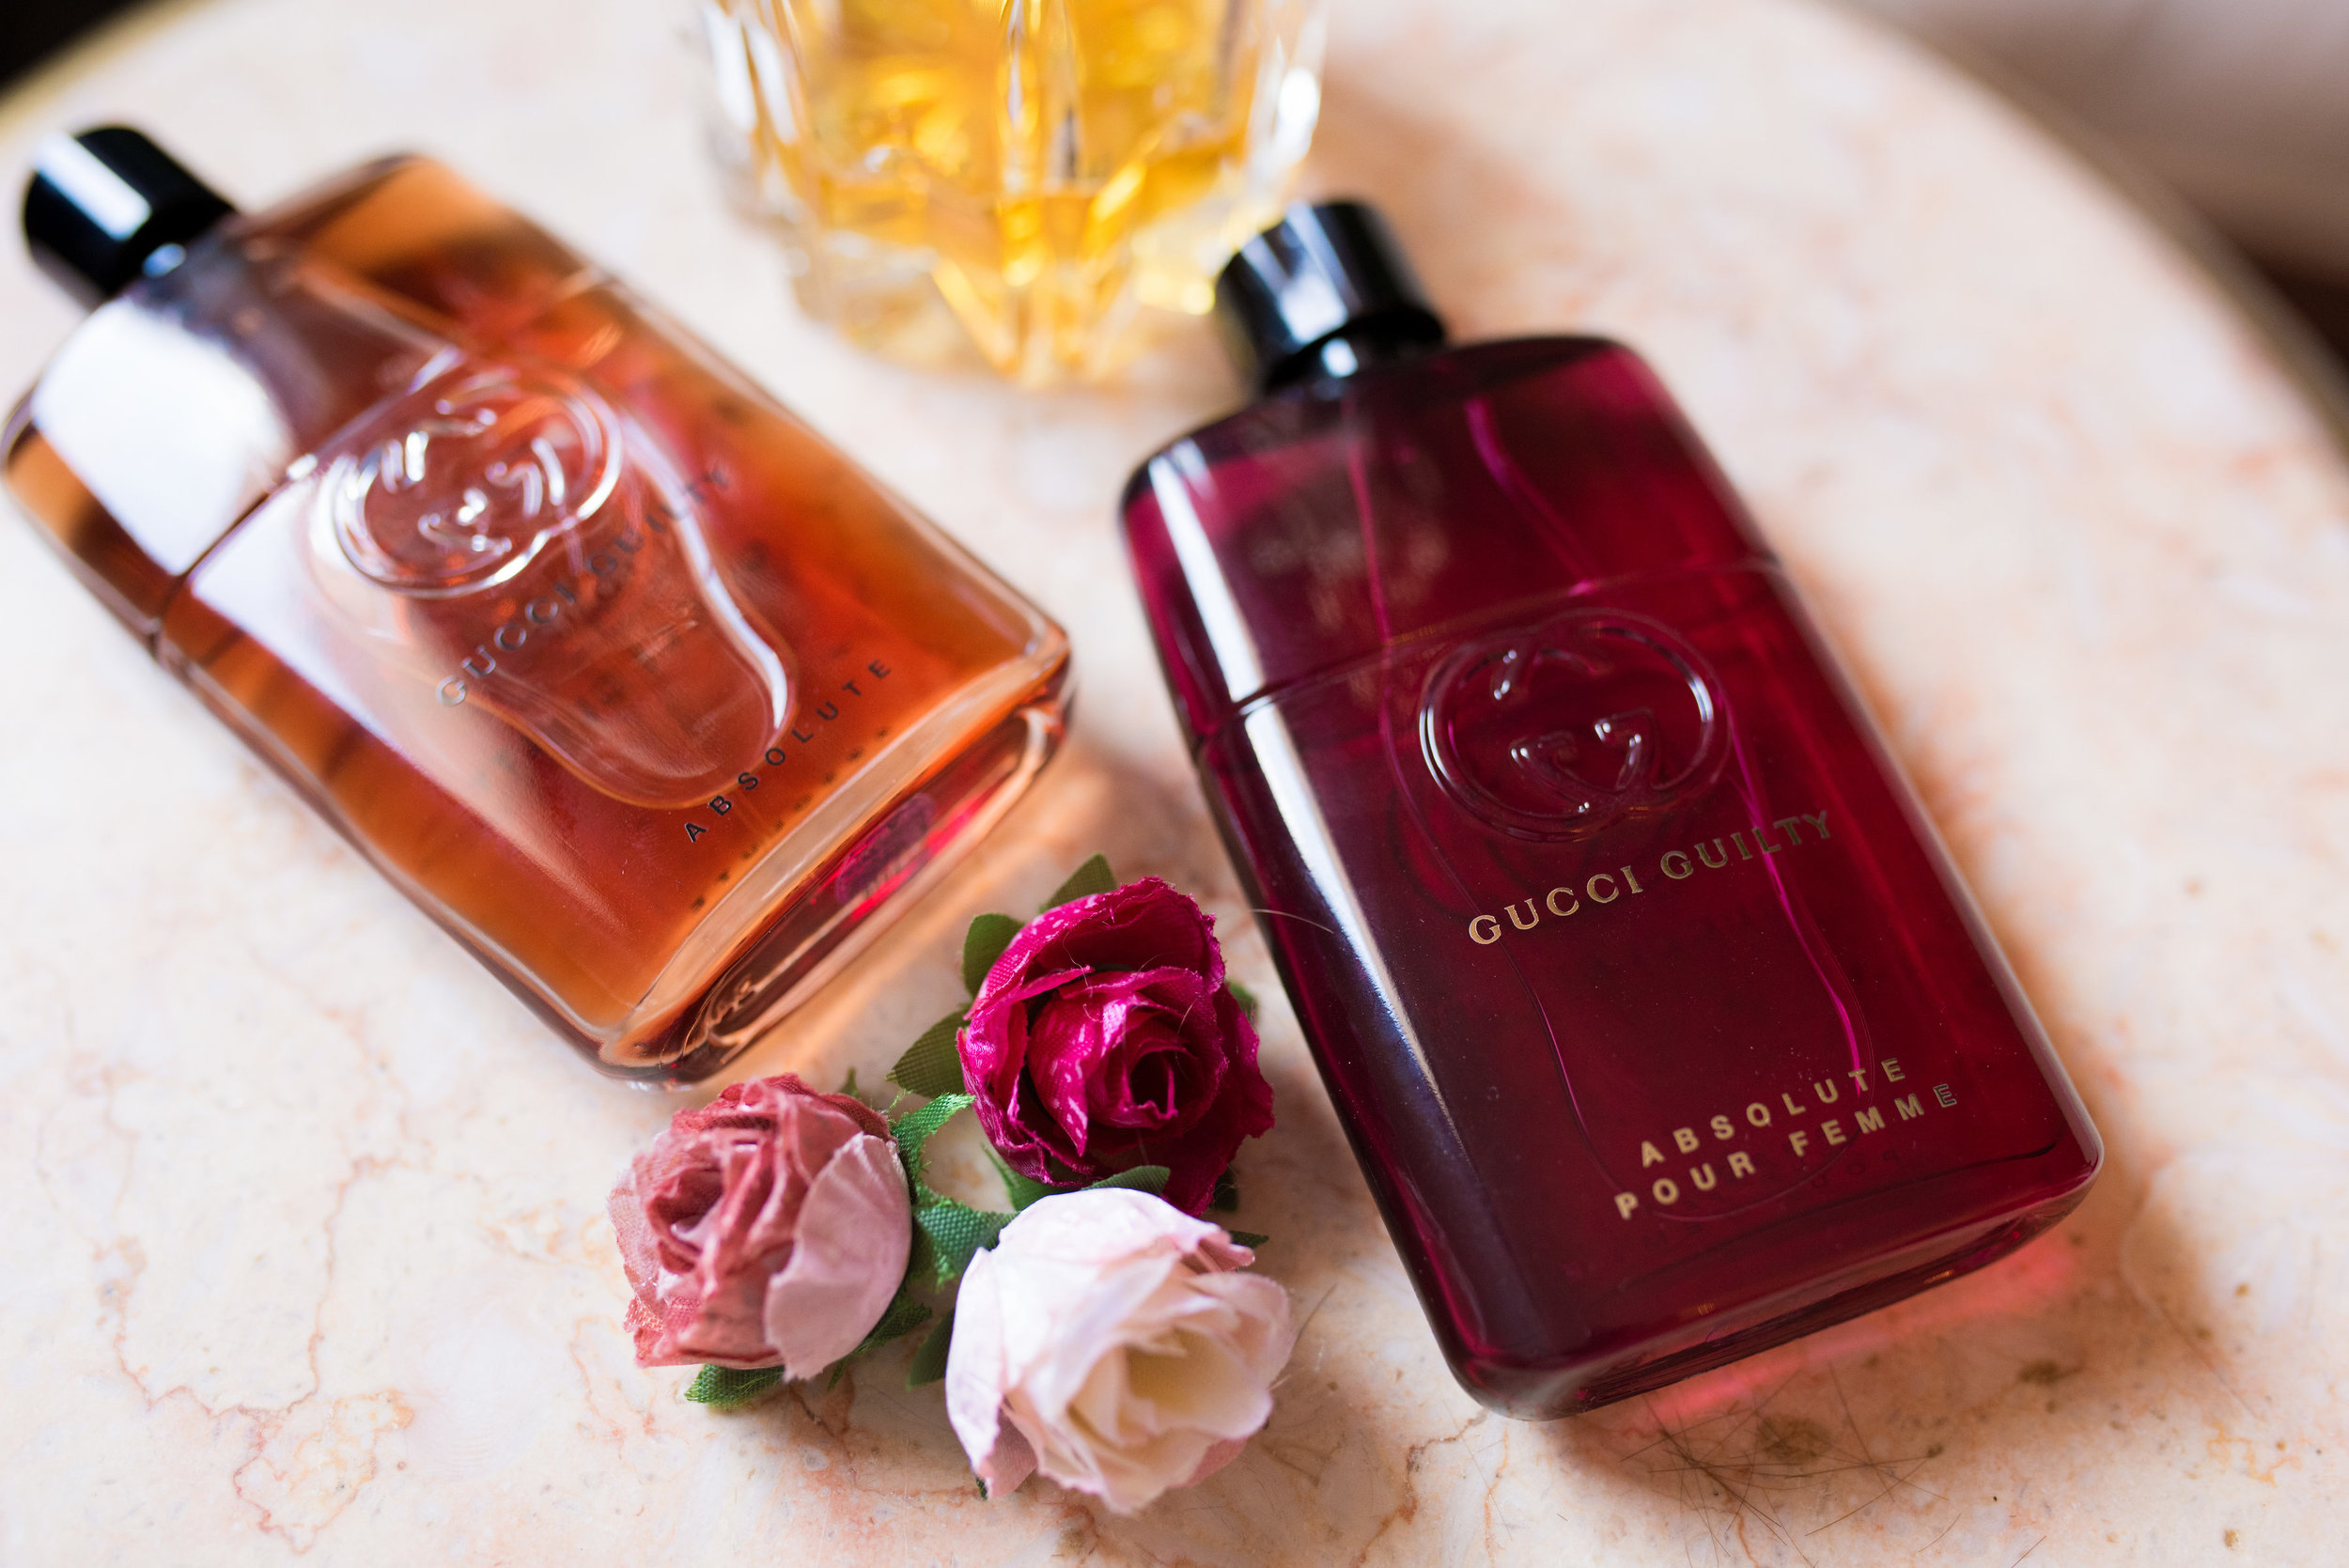 GUCCI - Absolute Pour Femme: the revolution of emancipated love